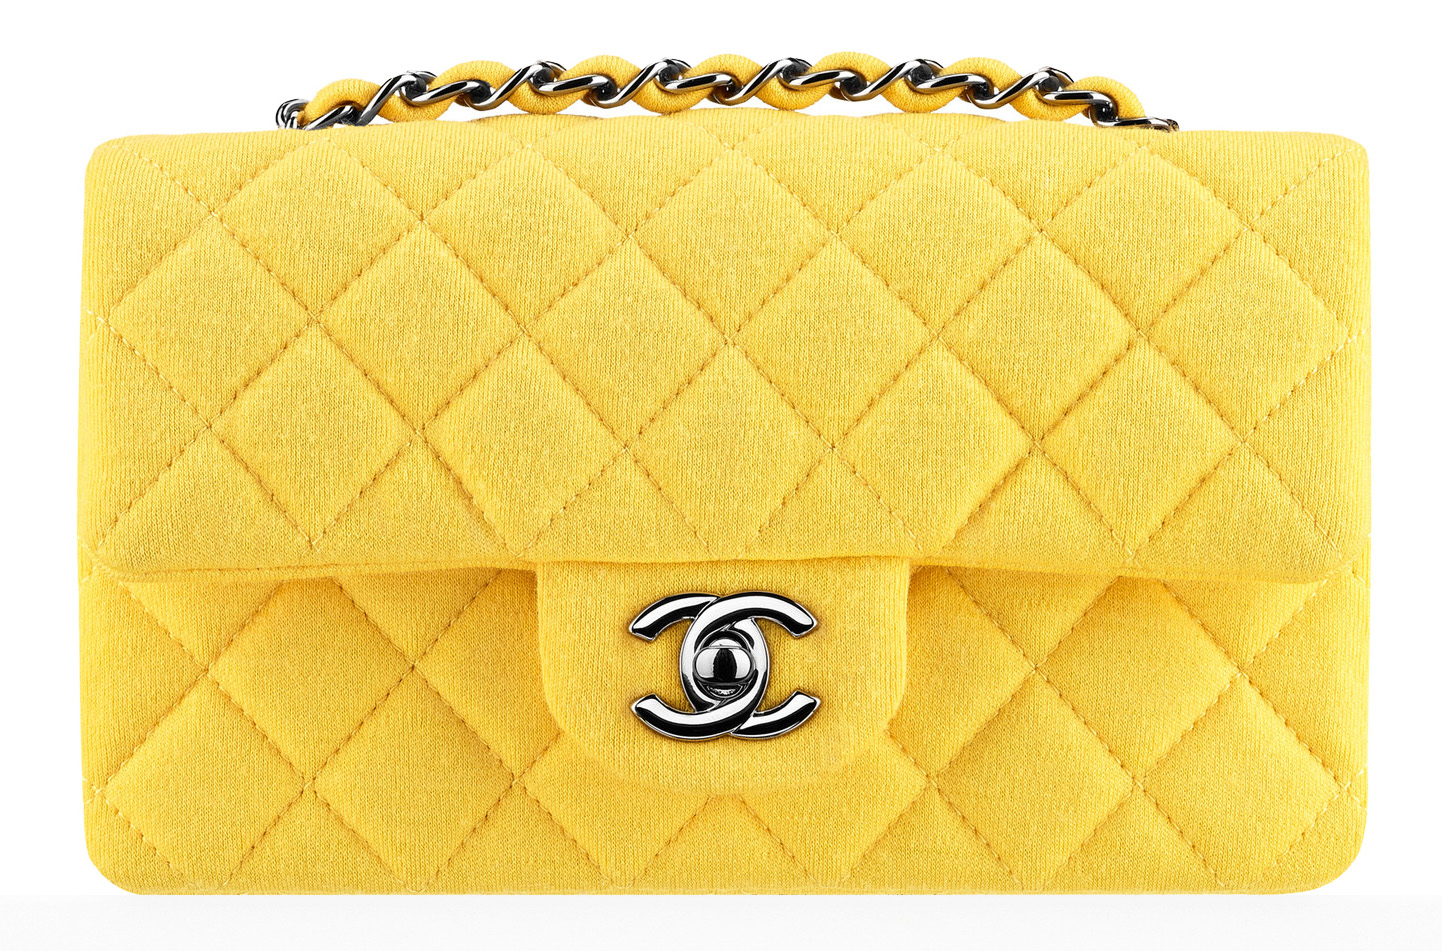 Chanel-Small-Jersey-Classic-Flap-Bag-Yellow